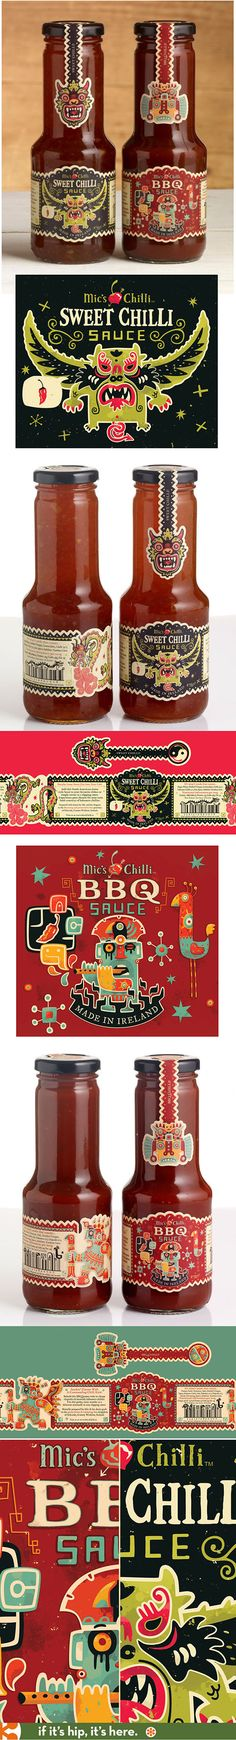 Beautifully illustrated labels by Steve Simpson for Mic's Sweet Chilli Sauce and BBQ sauce.